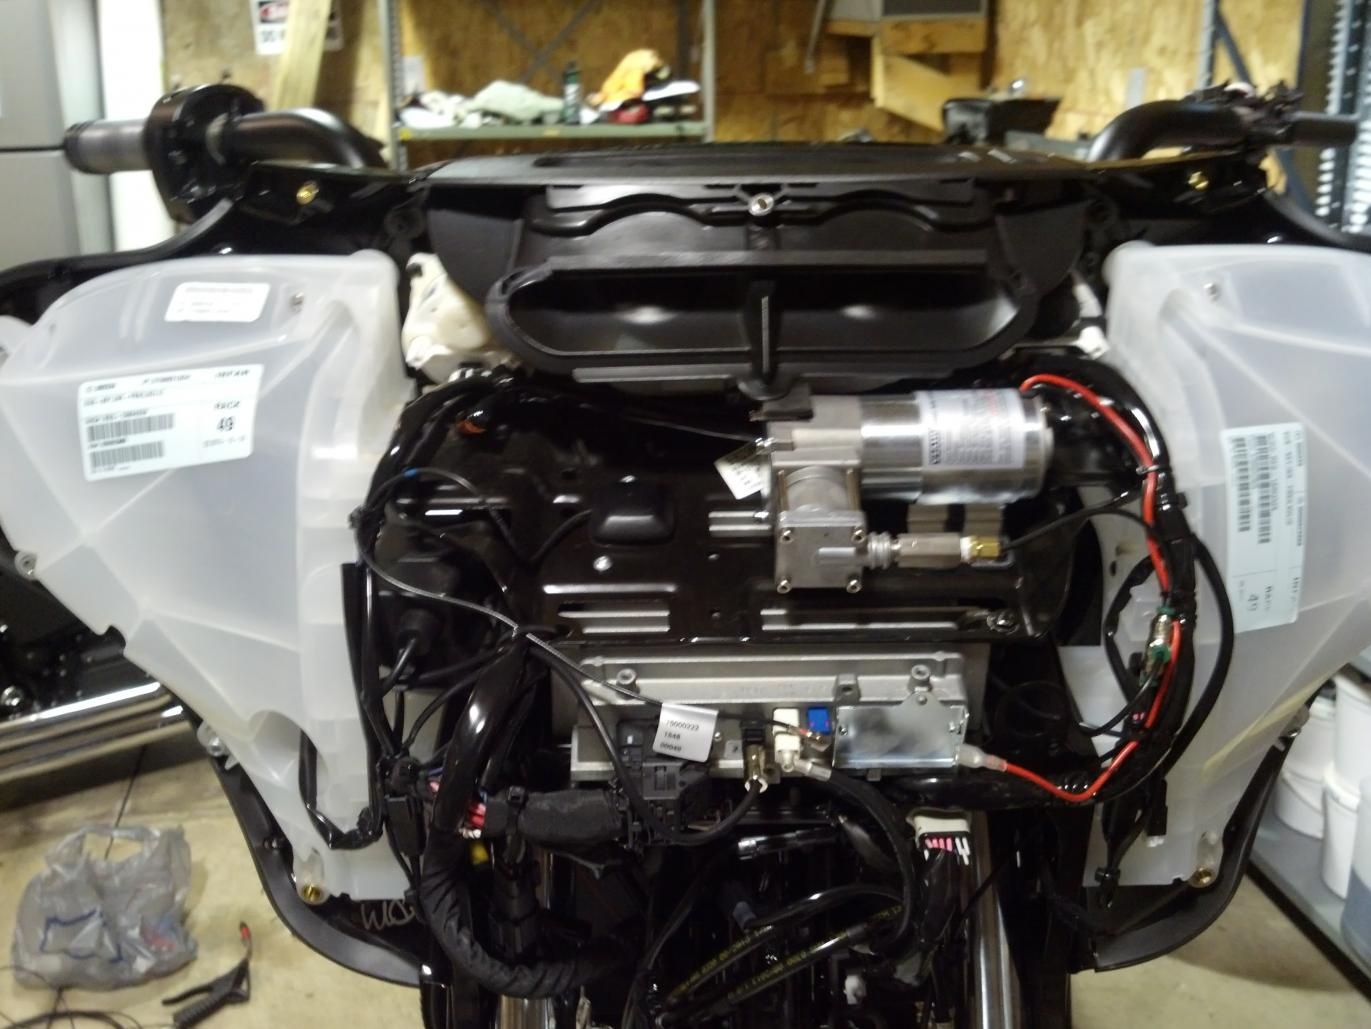 hight resolution of air ride install 2014 sgs harley davidson forums harley wiring diagrams pdf 2014 harley davidson street